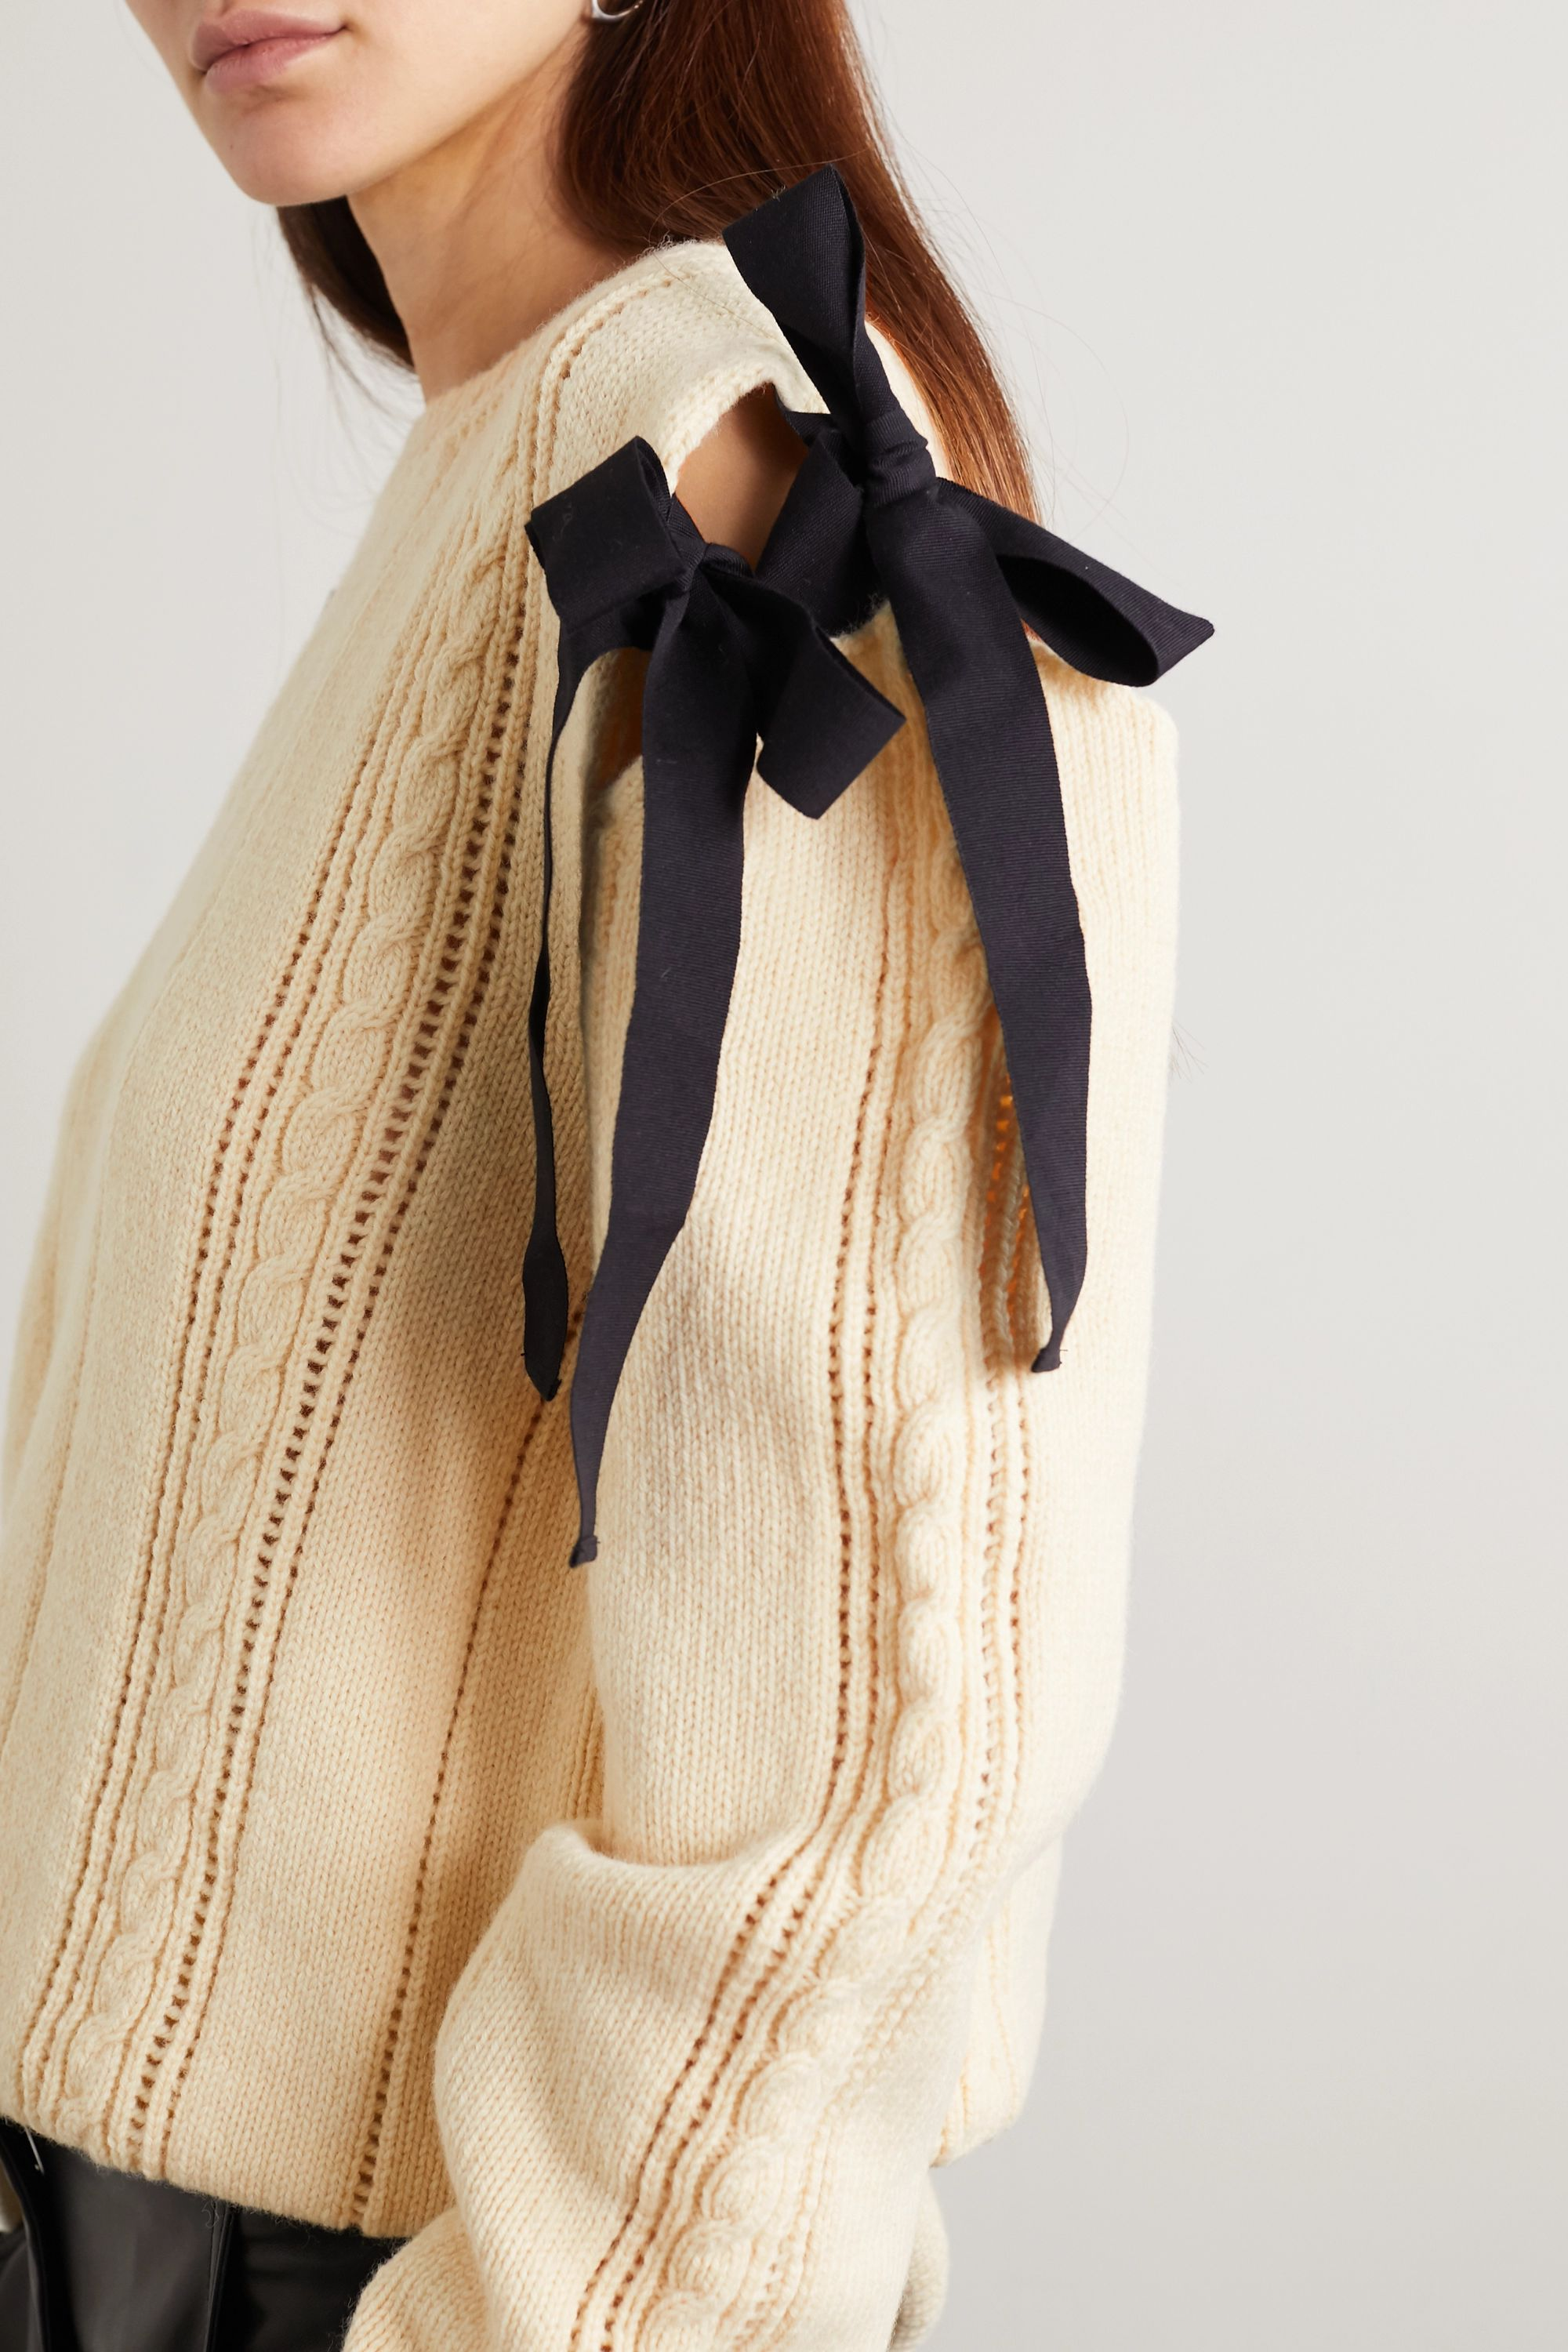 Molly Goddard Blanche tie-detailed cable-knit wool sweater